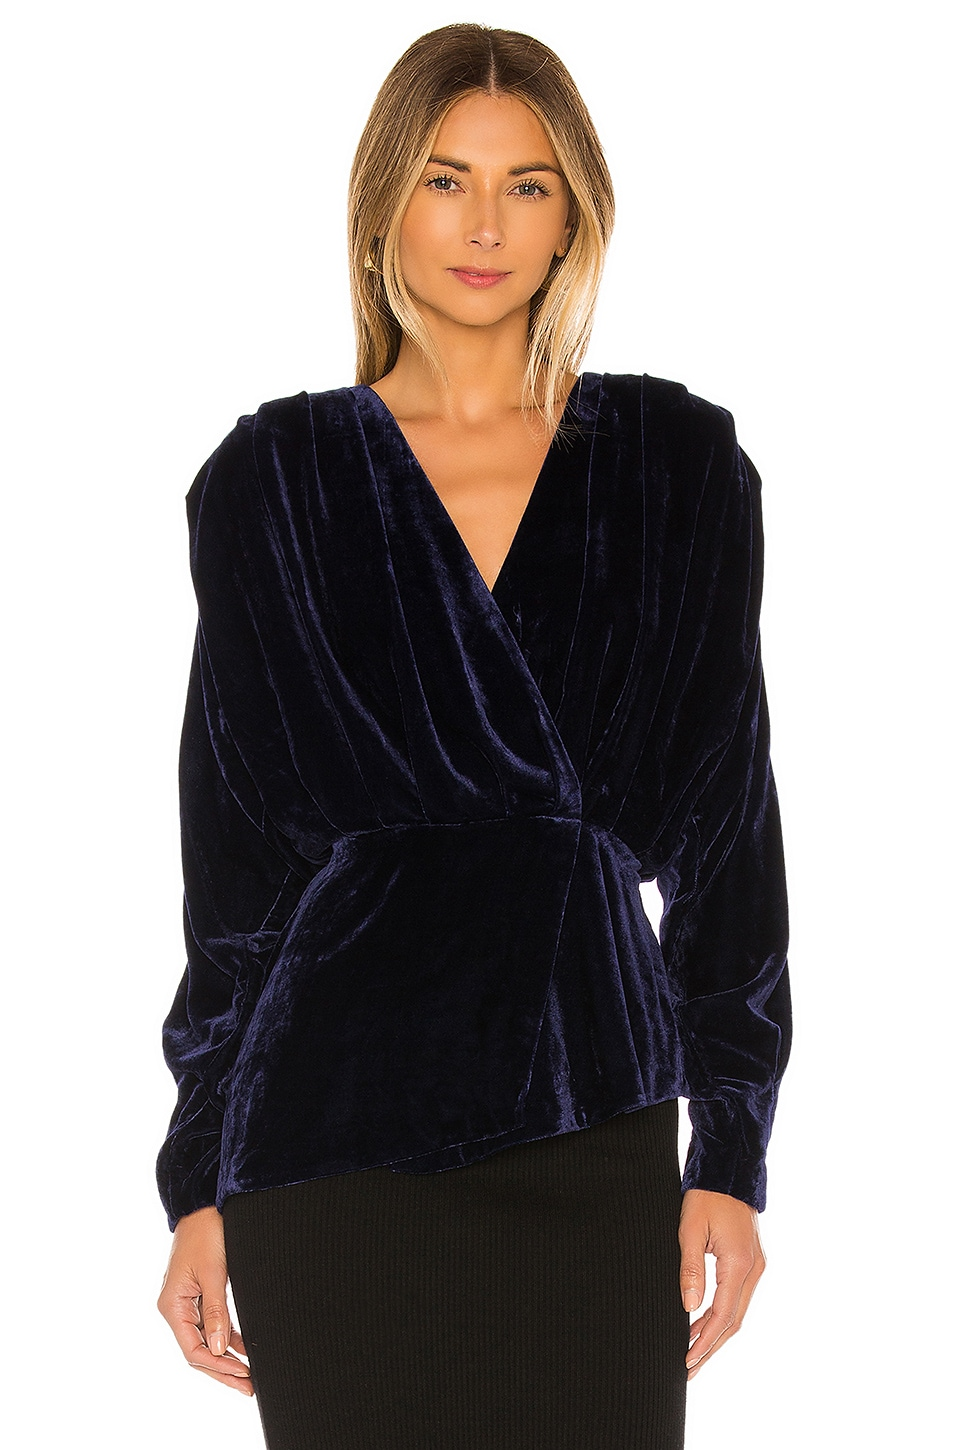 L'Academie The Benae Blouse in Navy